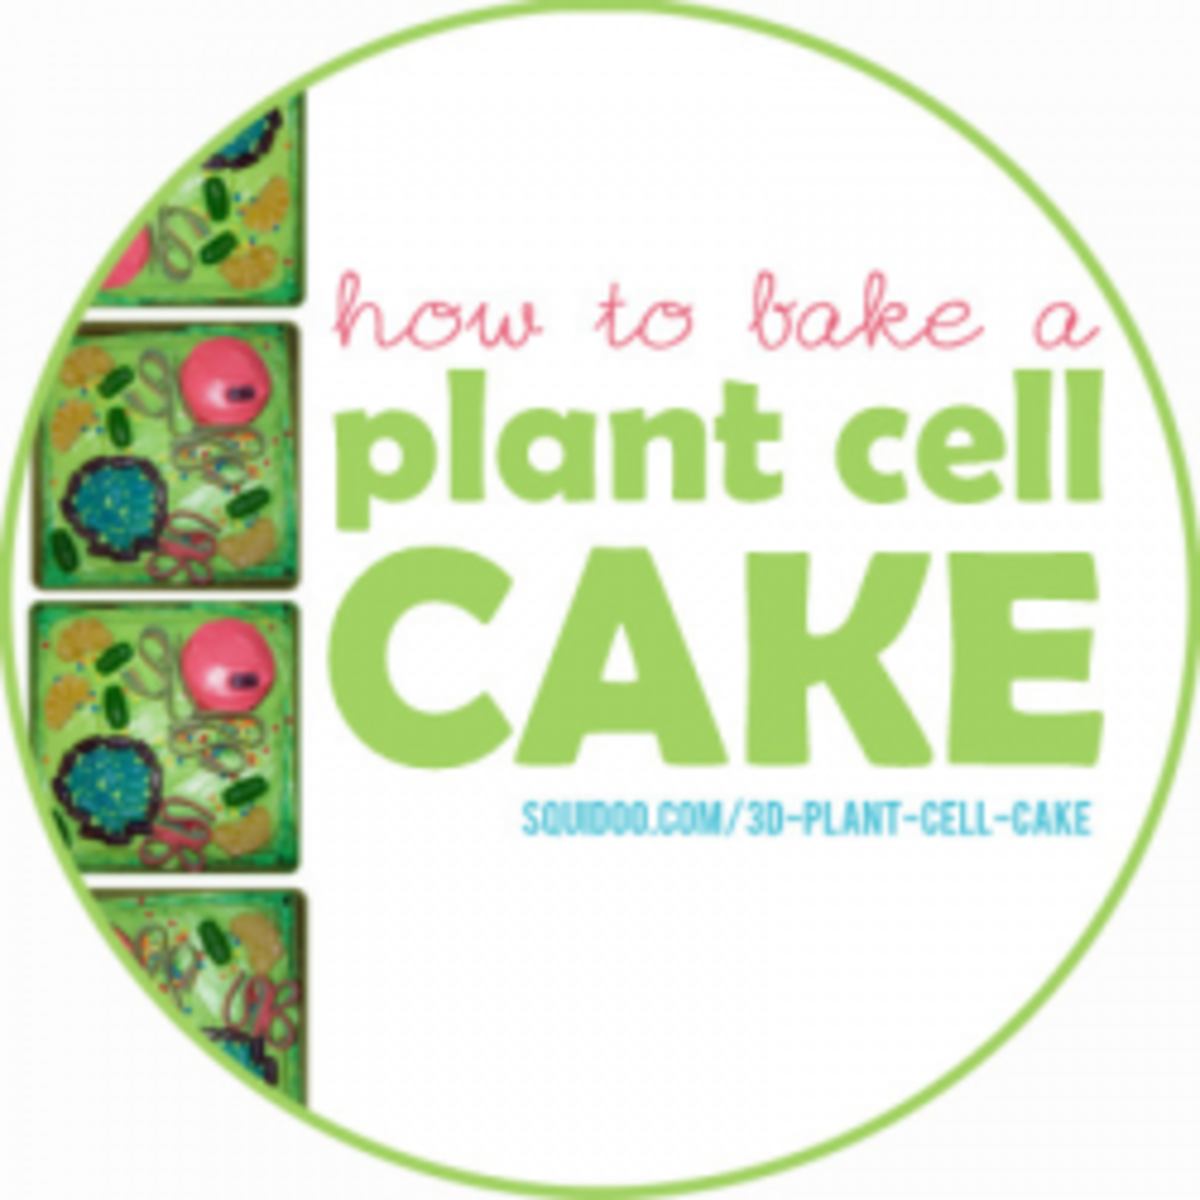 3d Plant Cell Cakes Hubpages